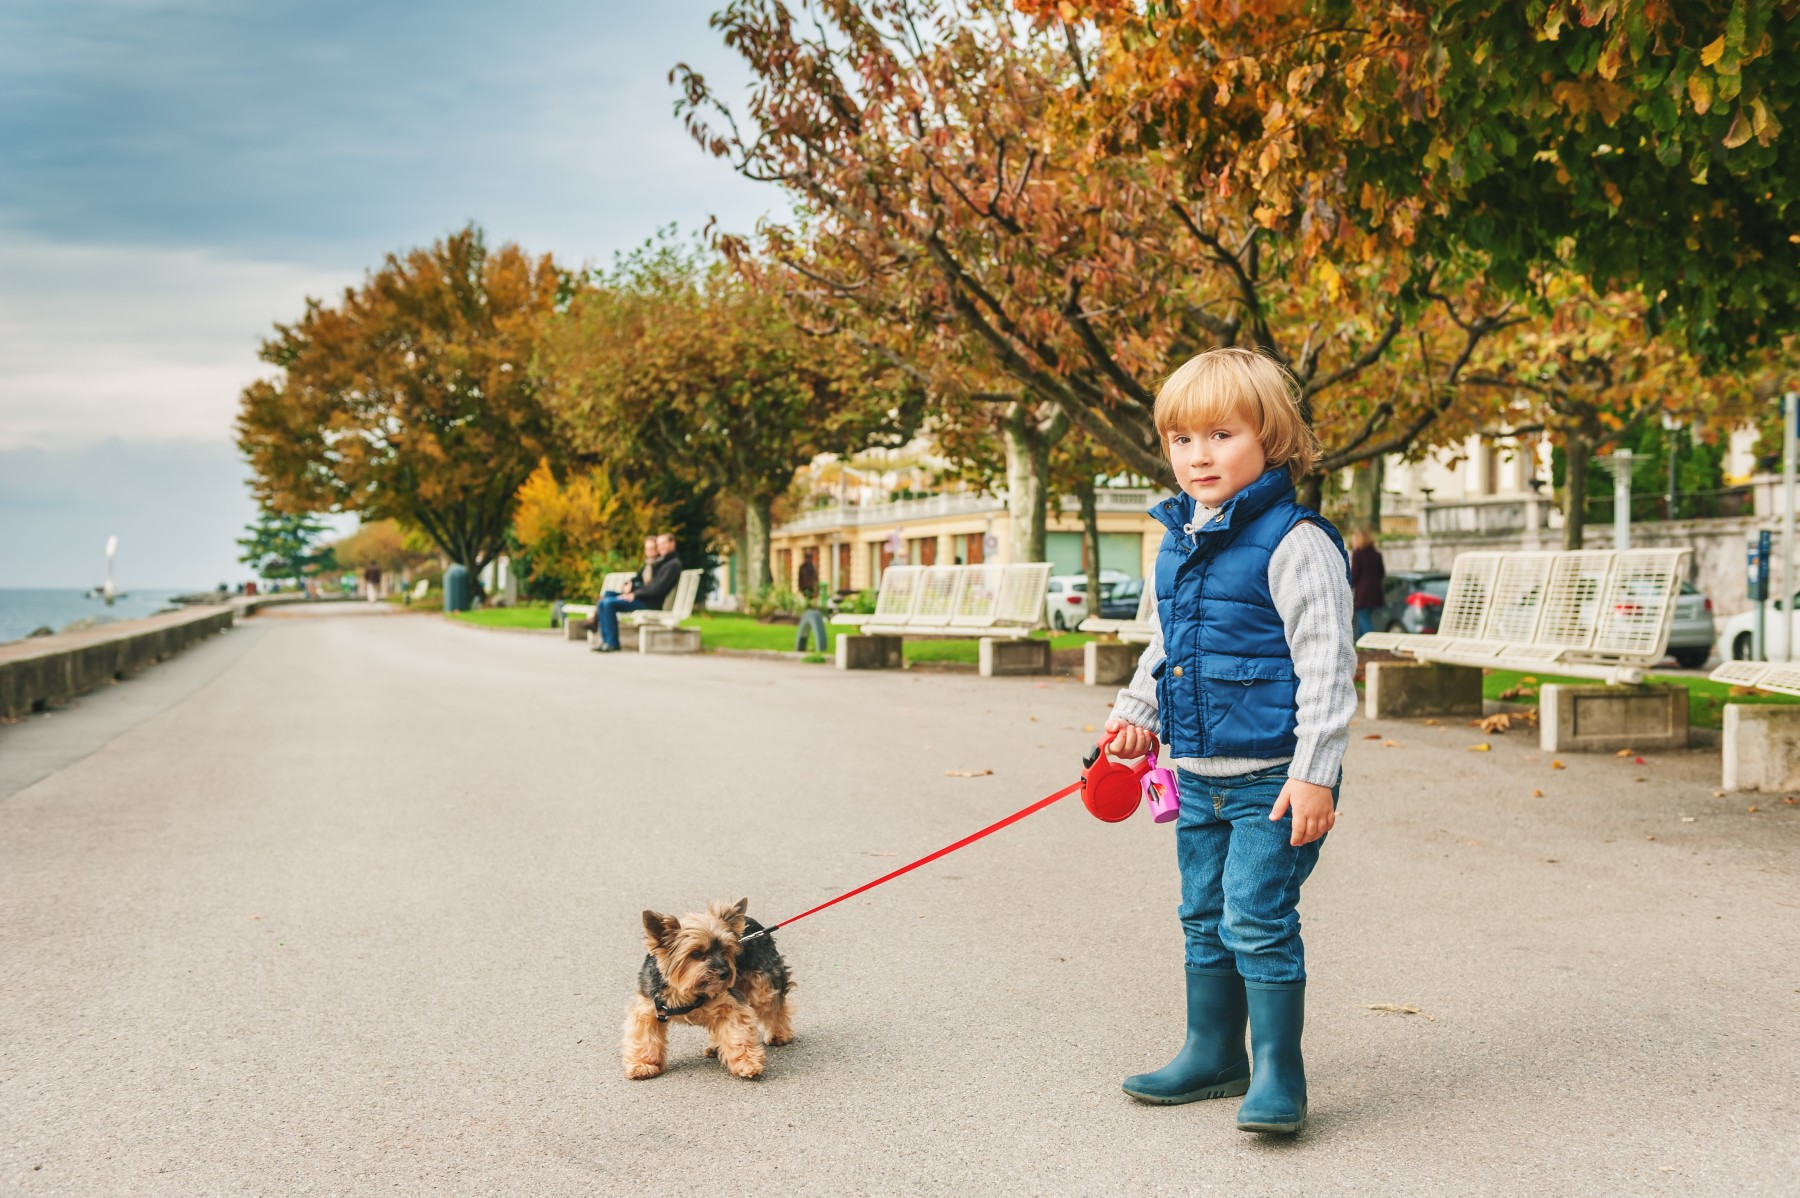 Young Swiss boy with a leashed dog